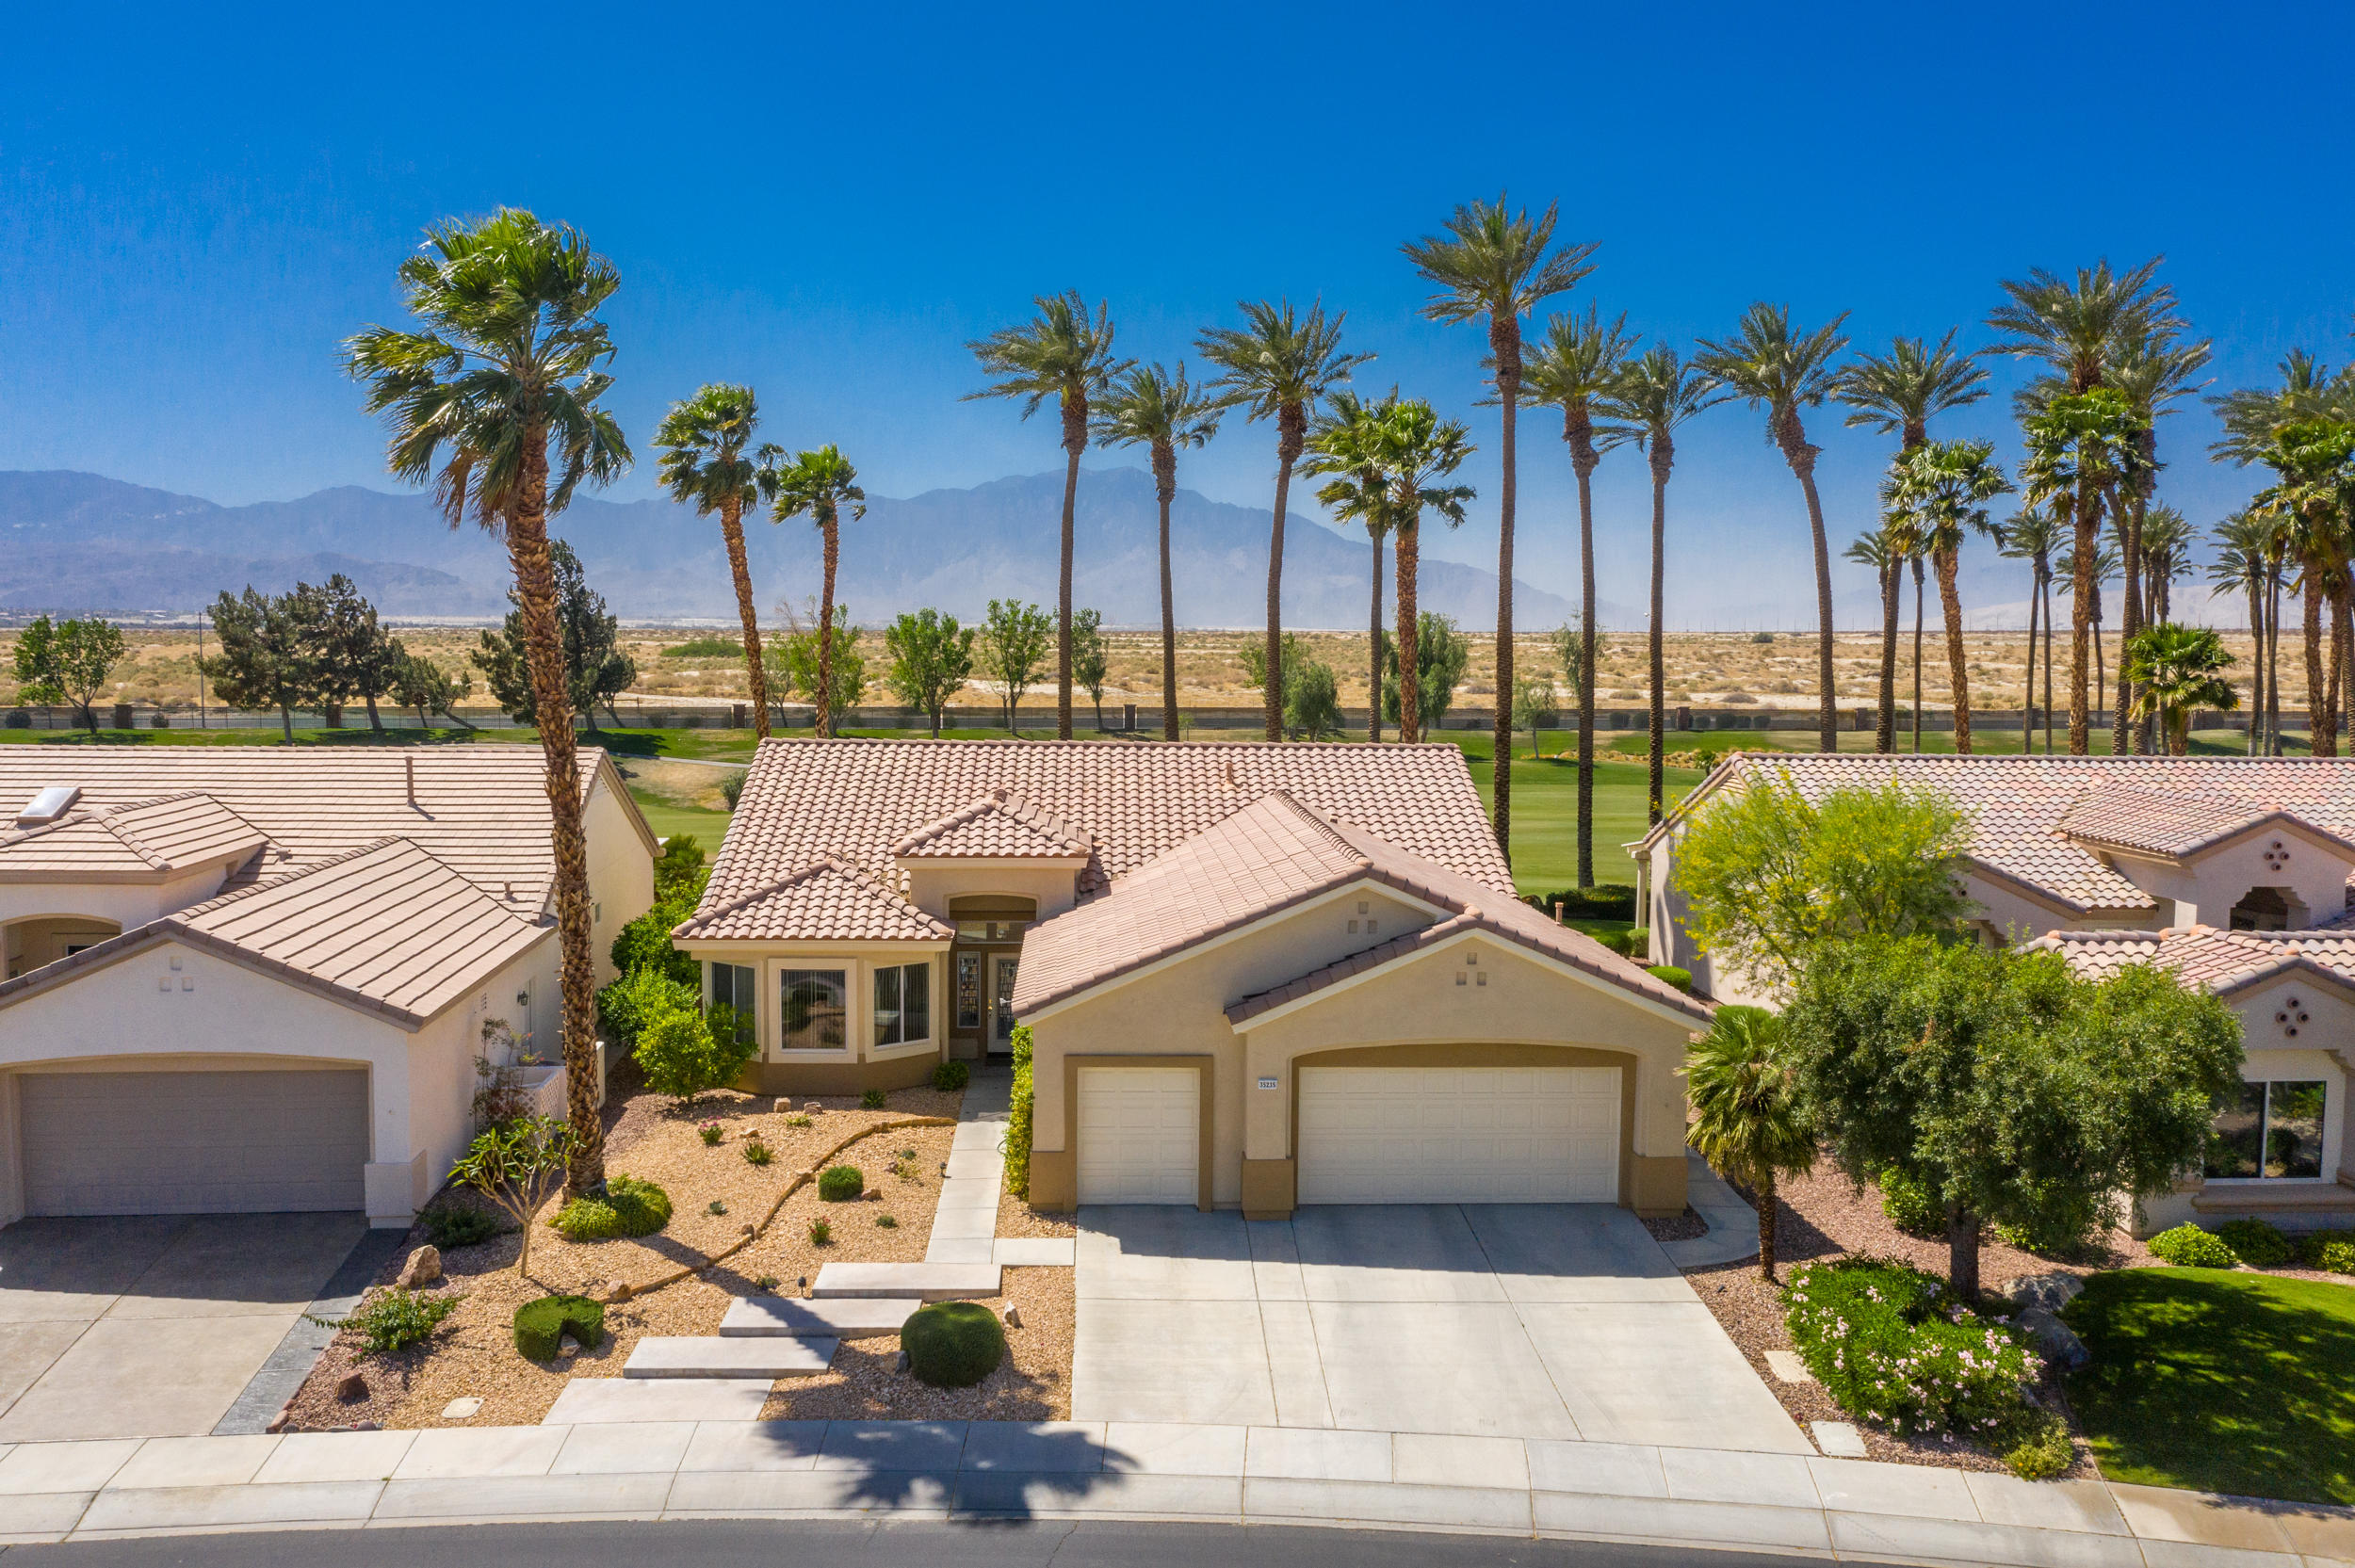 Photo of 35235 Inverness Avenue, Palm Desert, CA 92211